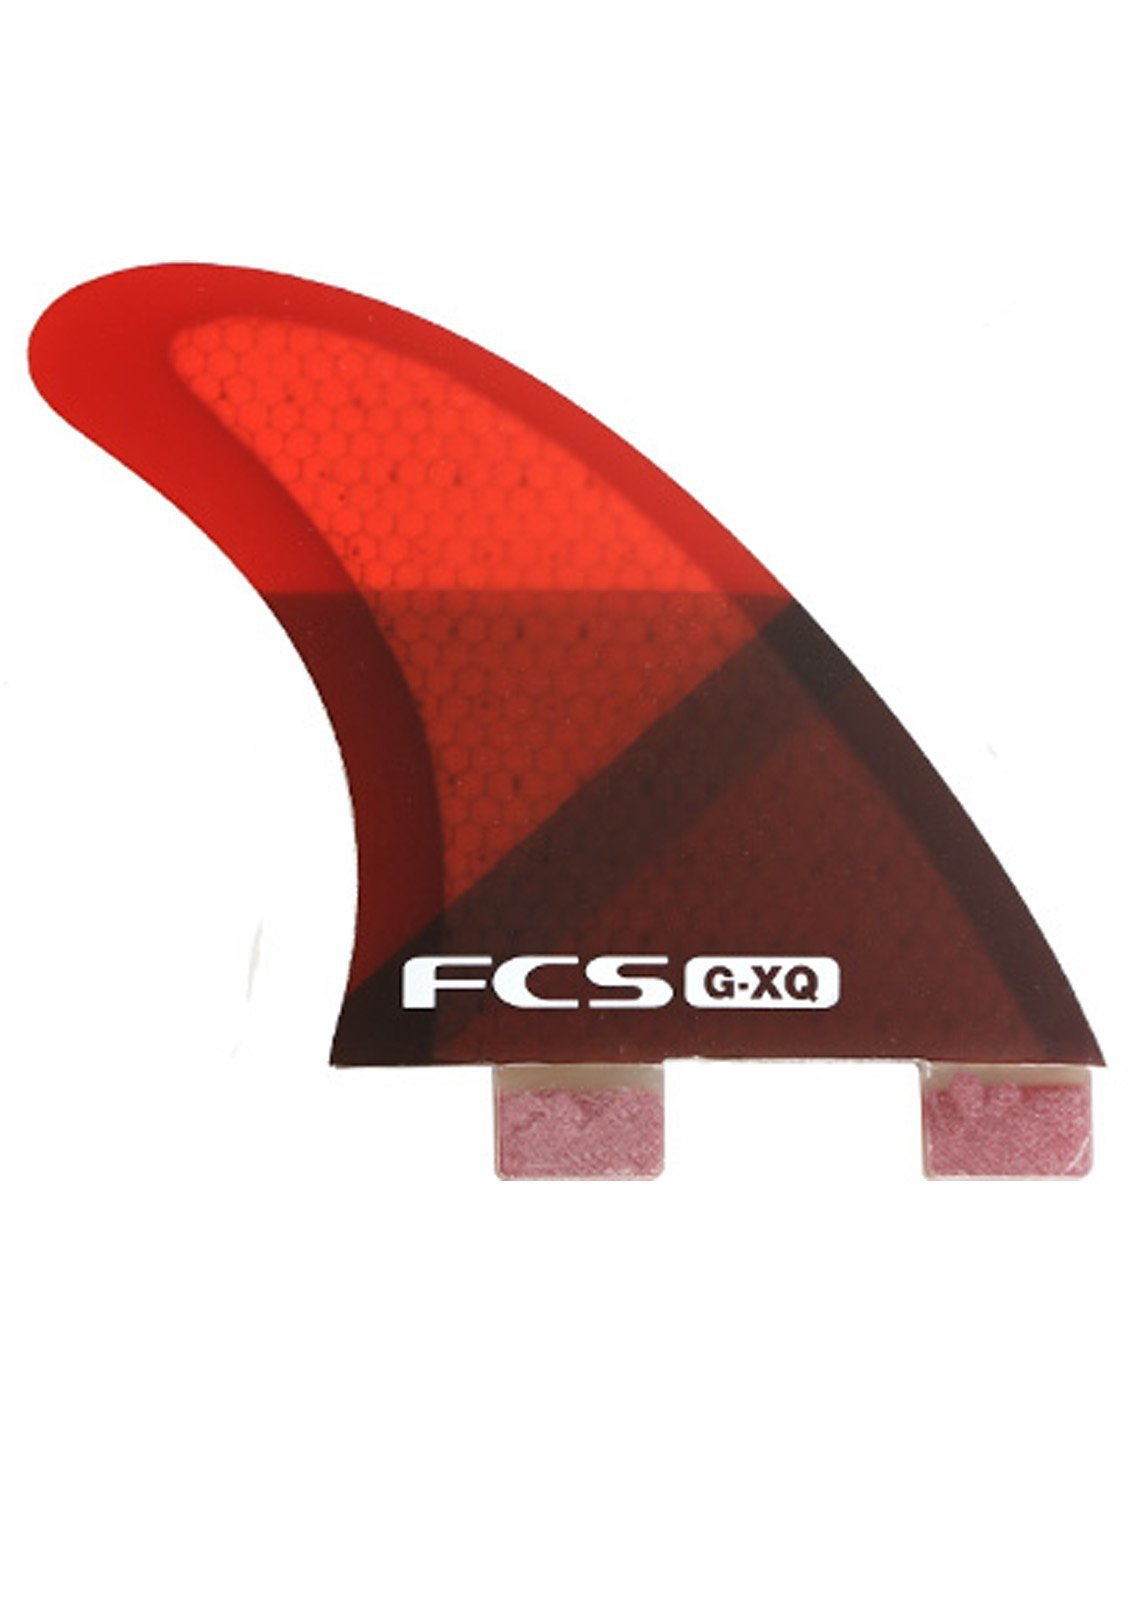 FCS G-XQ Slice Rear Set Surfboard Fins